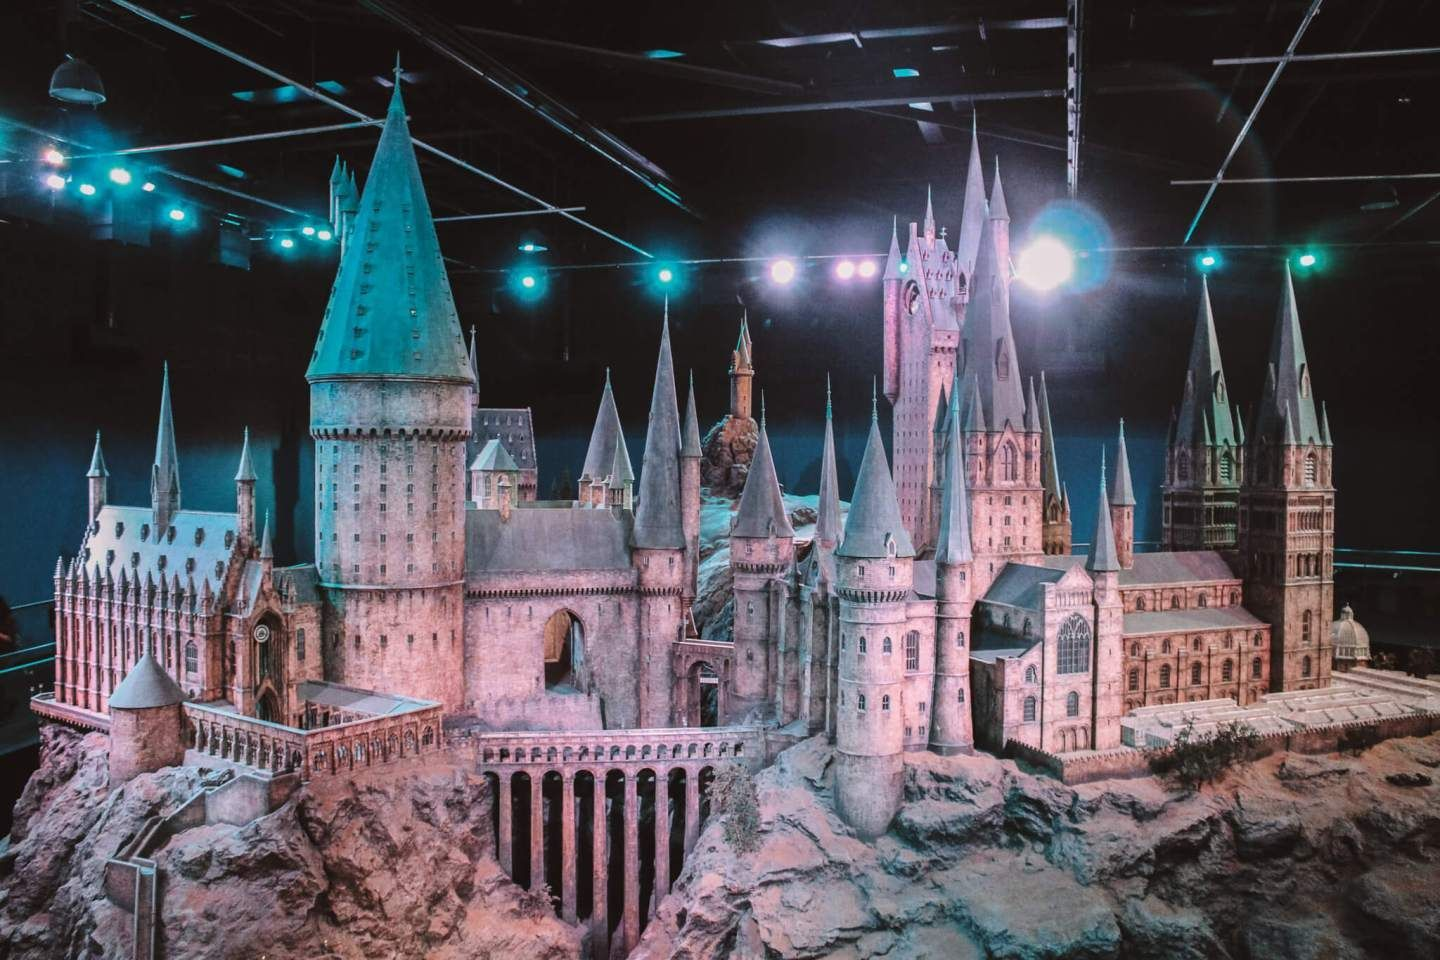 a3c54f3de8fb55f491a673c89dcf25ee - How Do I Get To Harry Potter World From London